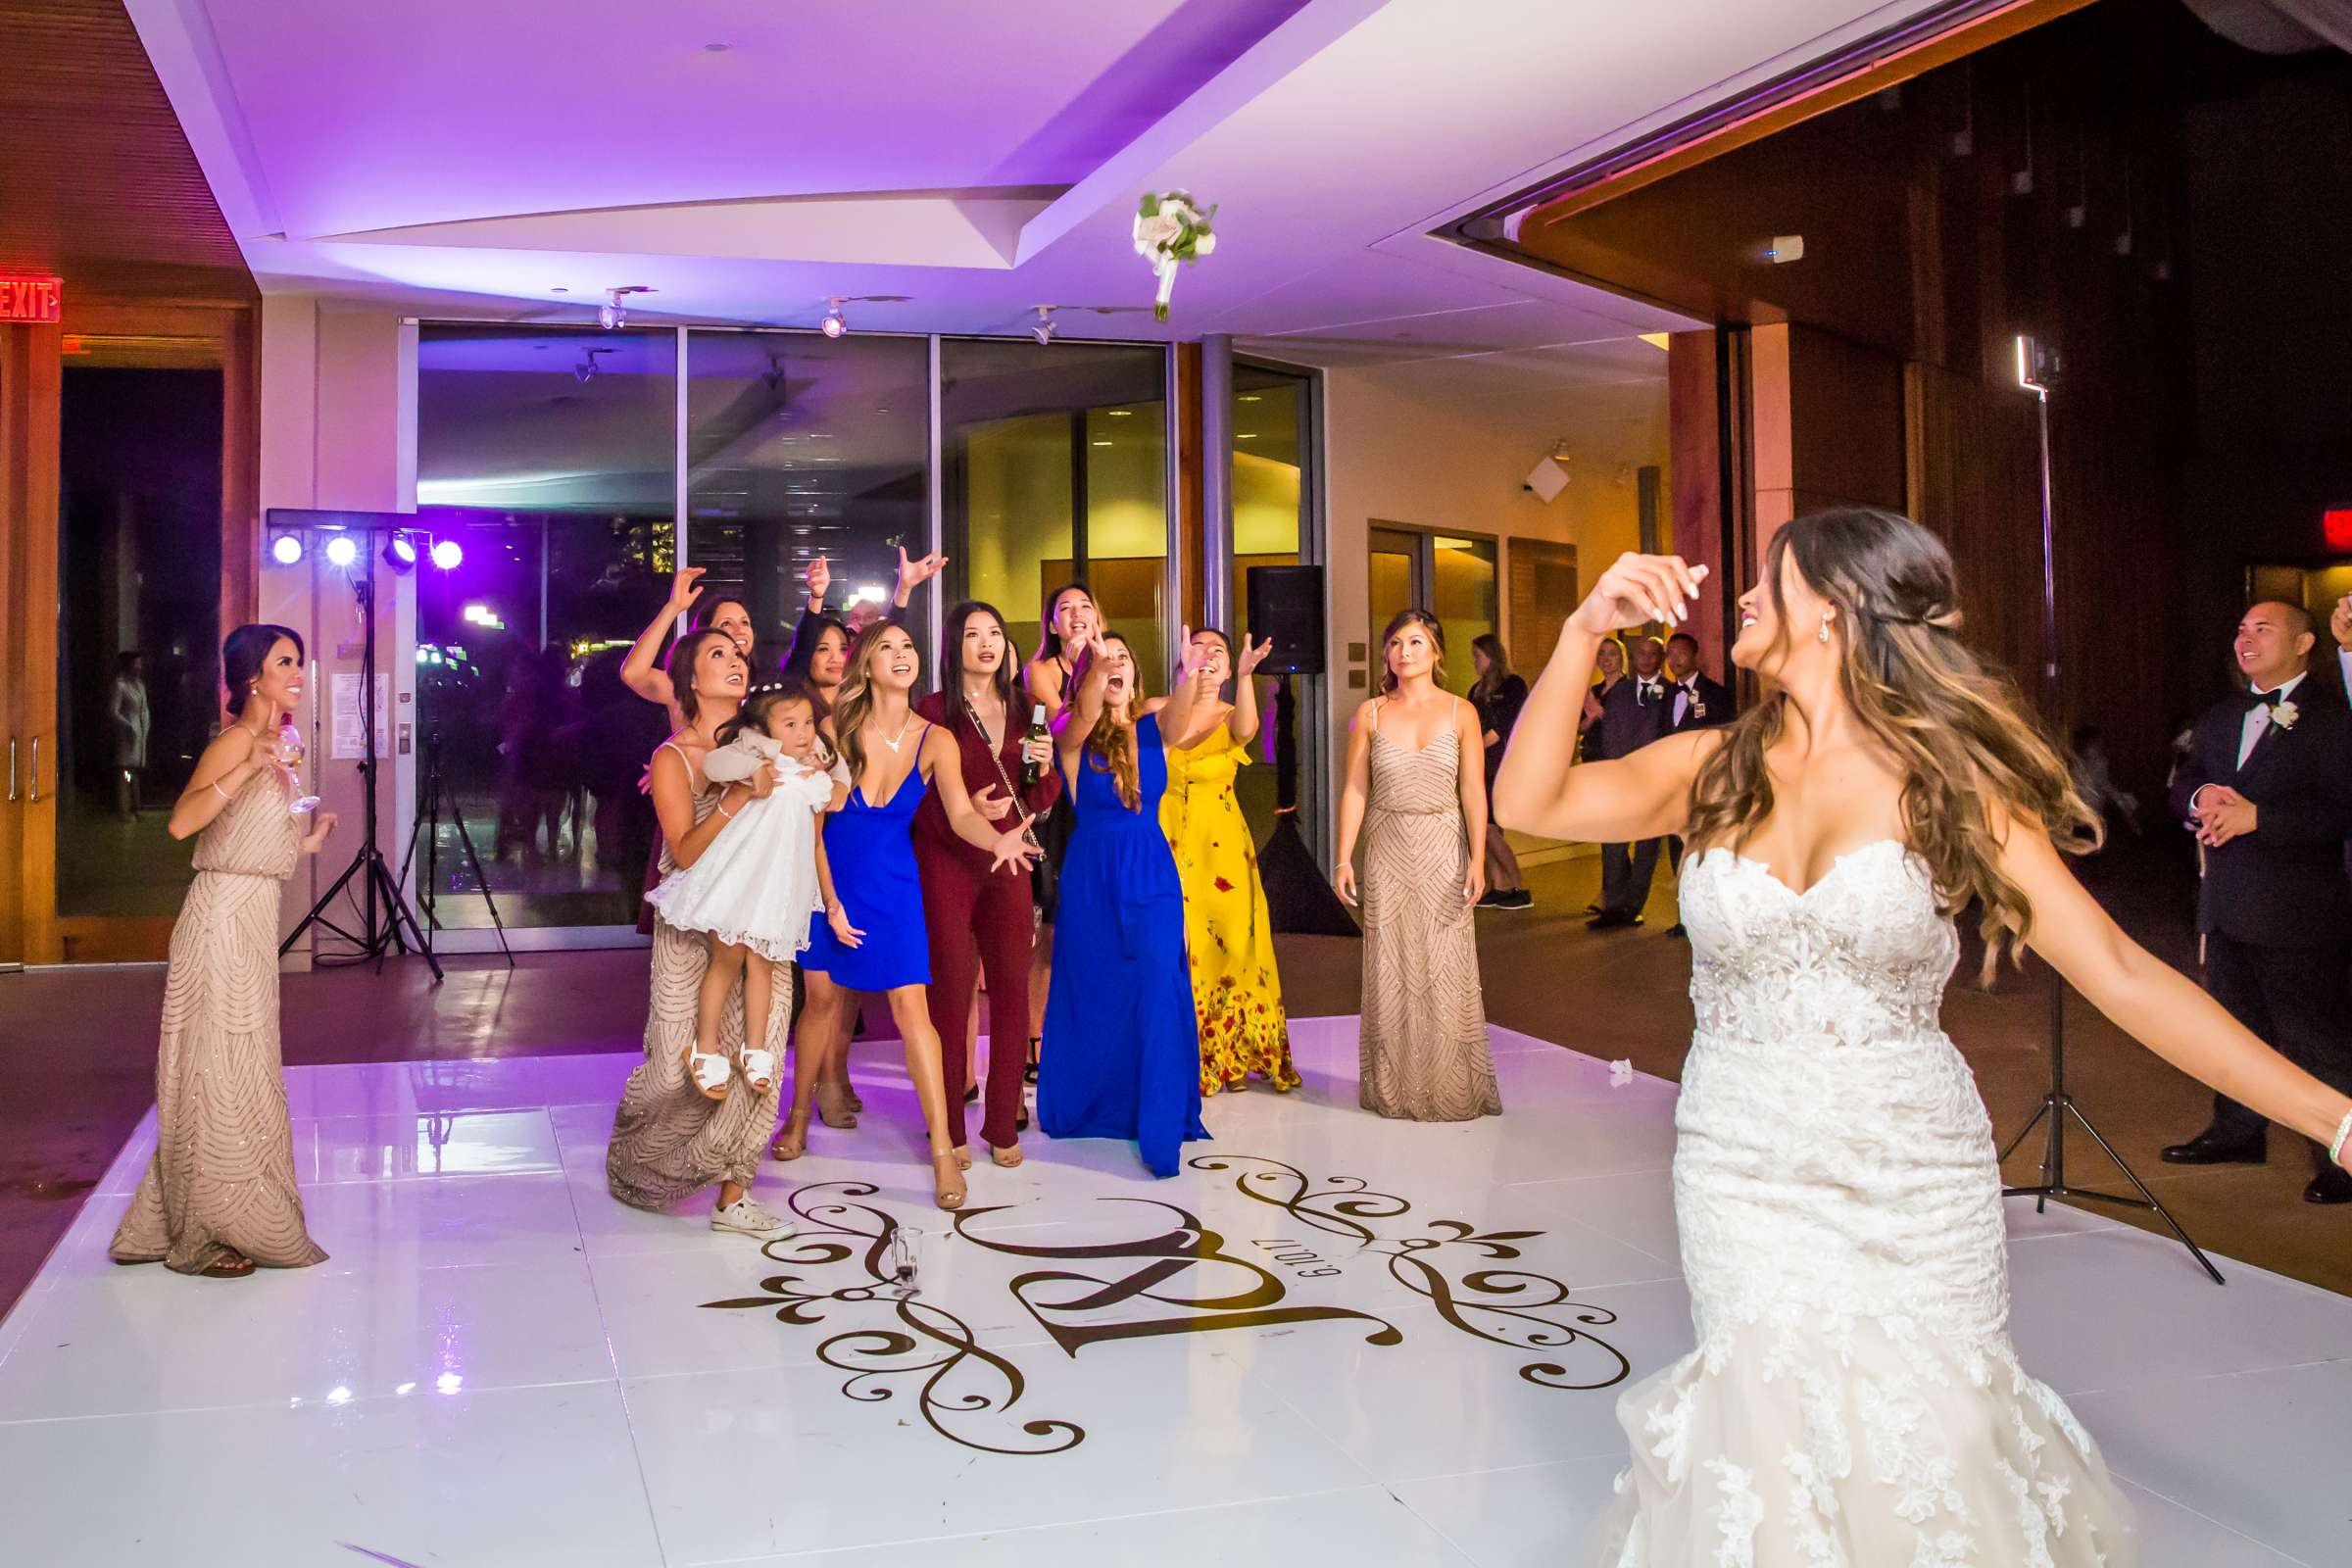 Scripps Seaside Forum Wedding coordinated by Lavish Weddings, Cindy and Justin Wedding Photo #381883 by True Photography